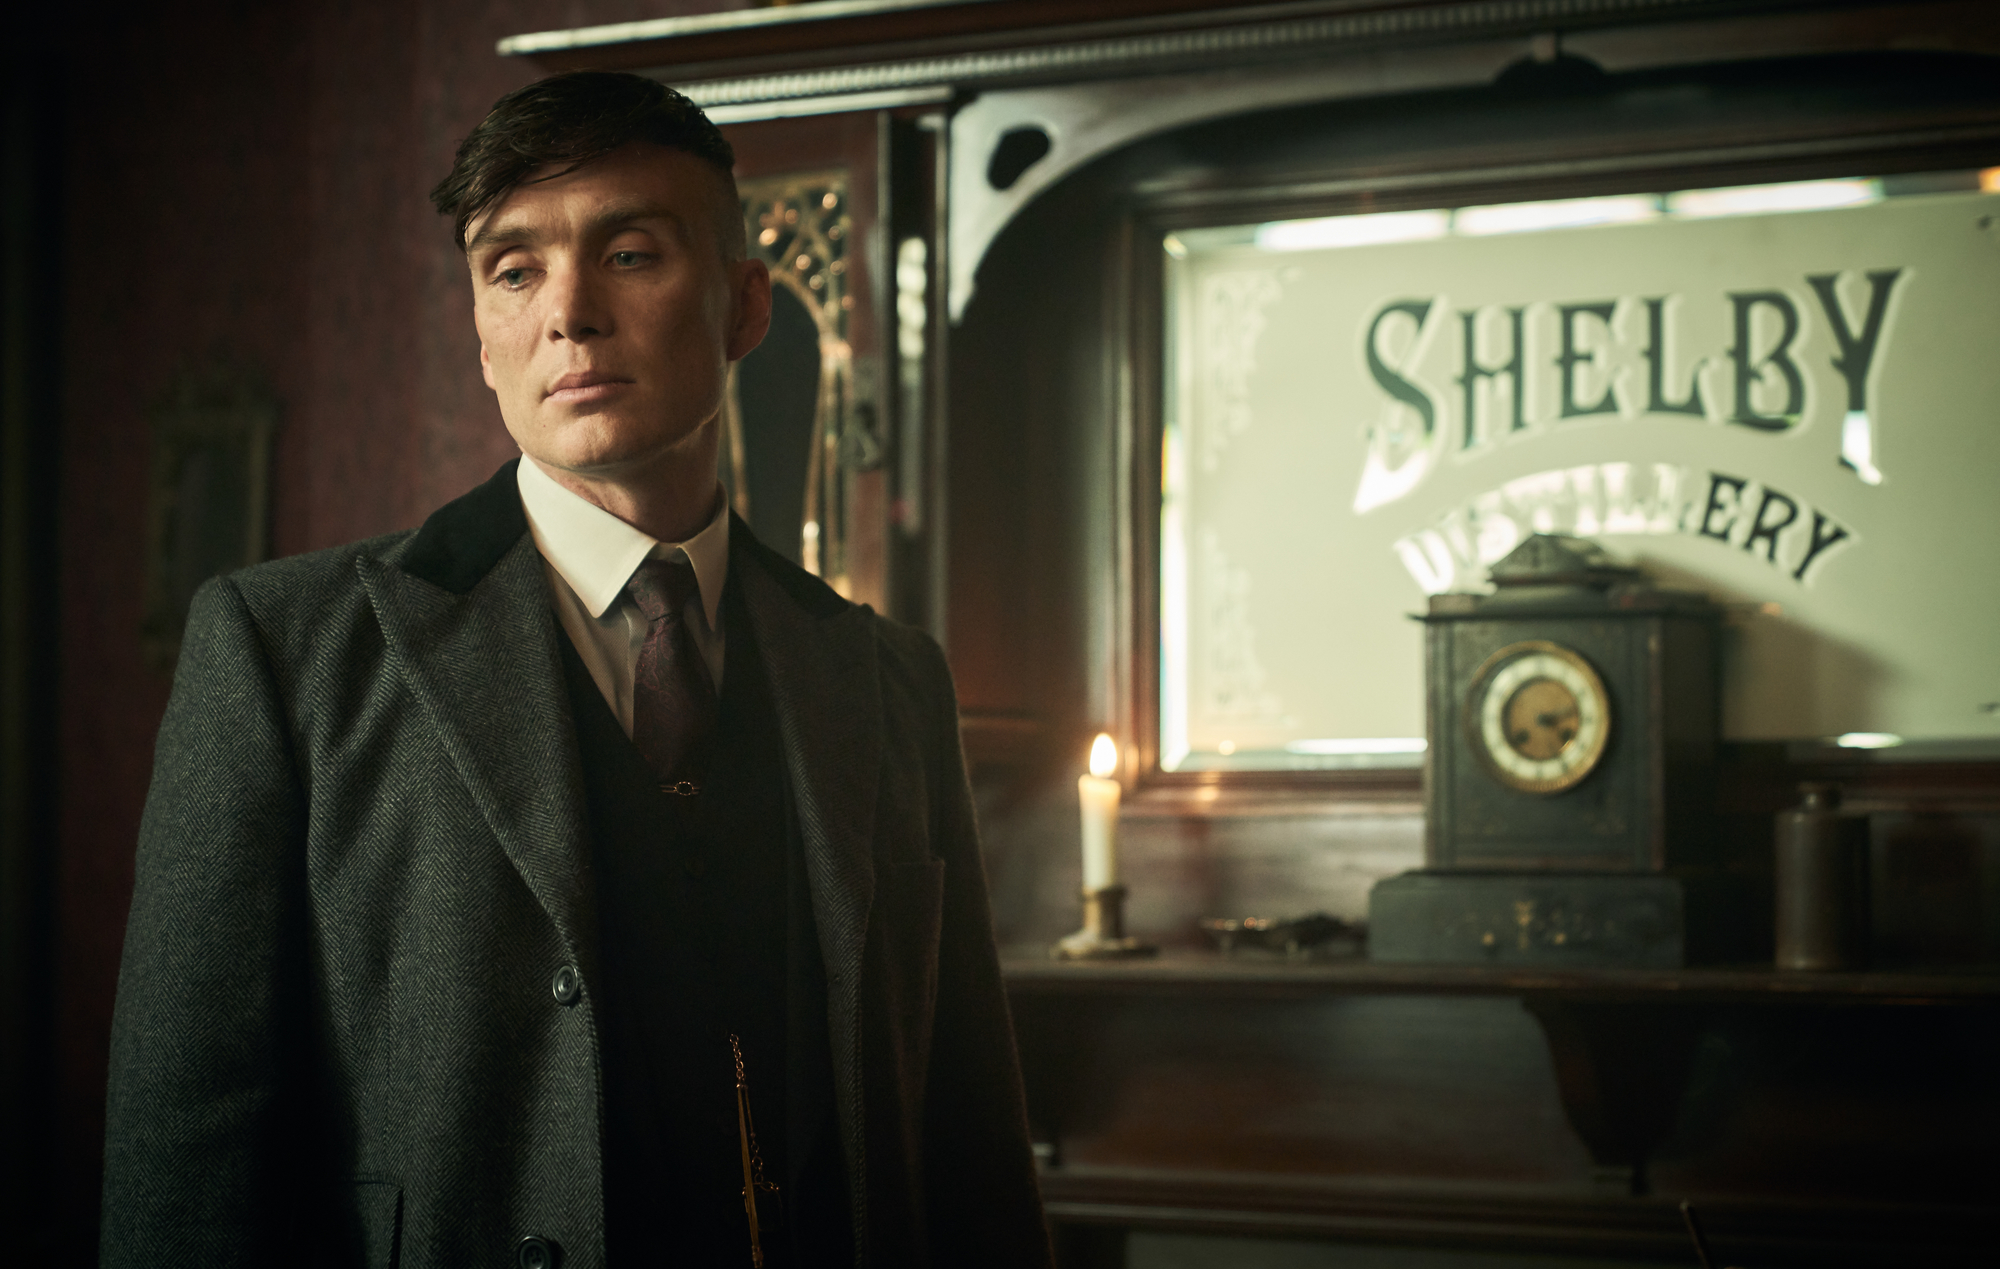 Peaky Blinders Season 5 Release Date Trailer Cast Plot And More